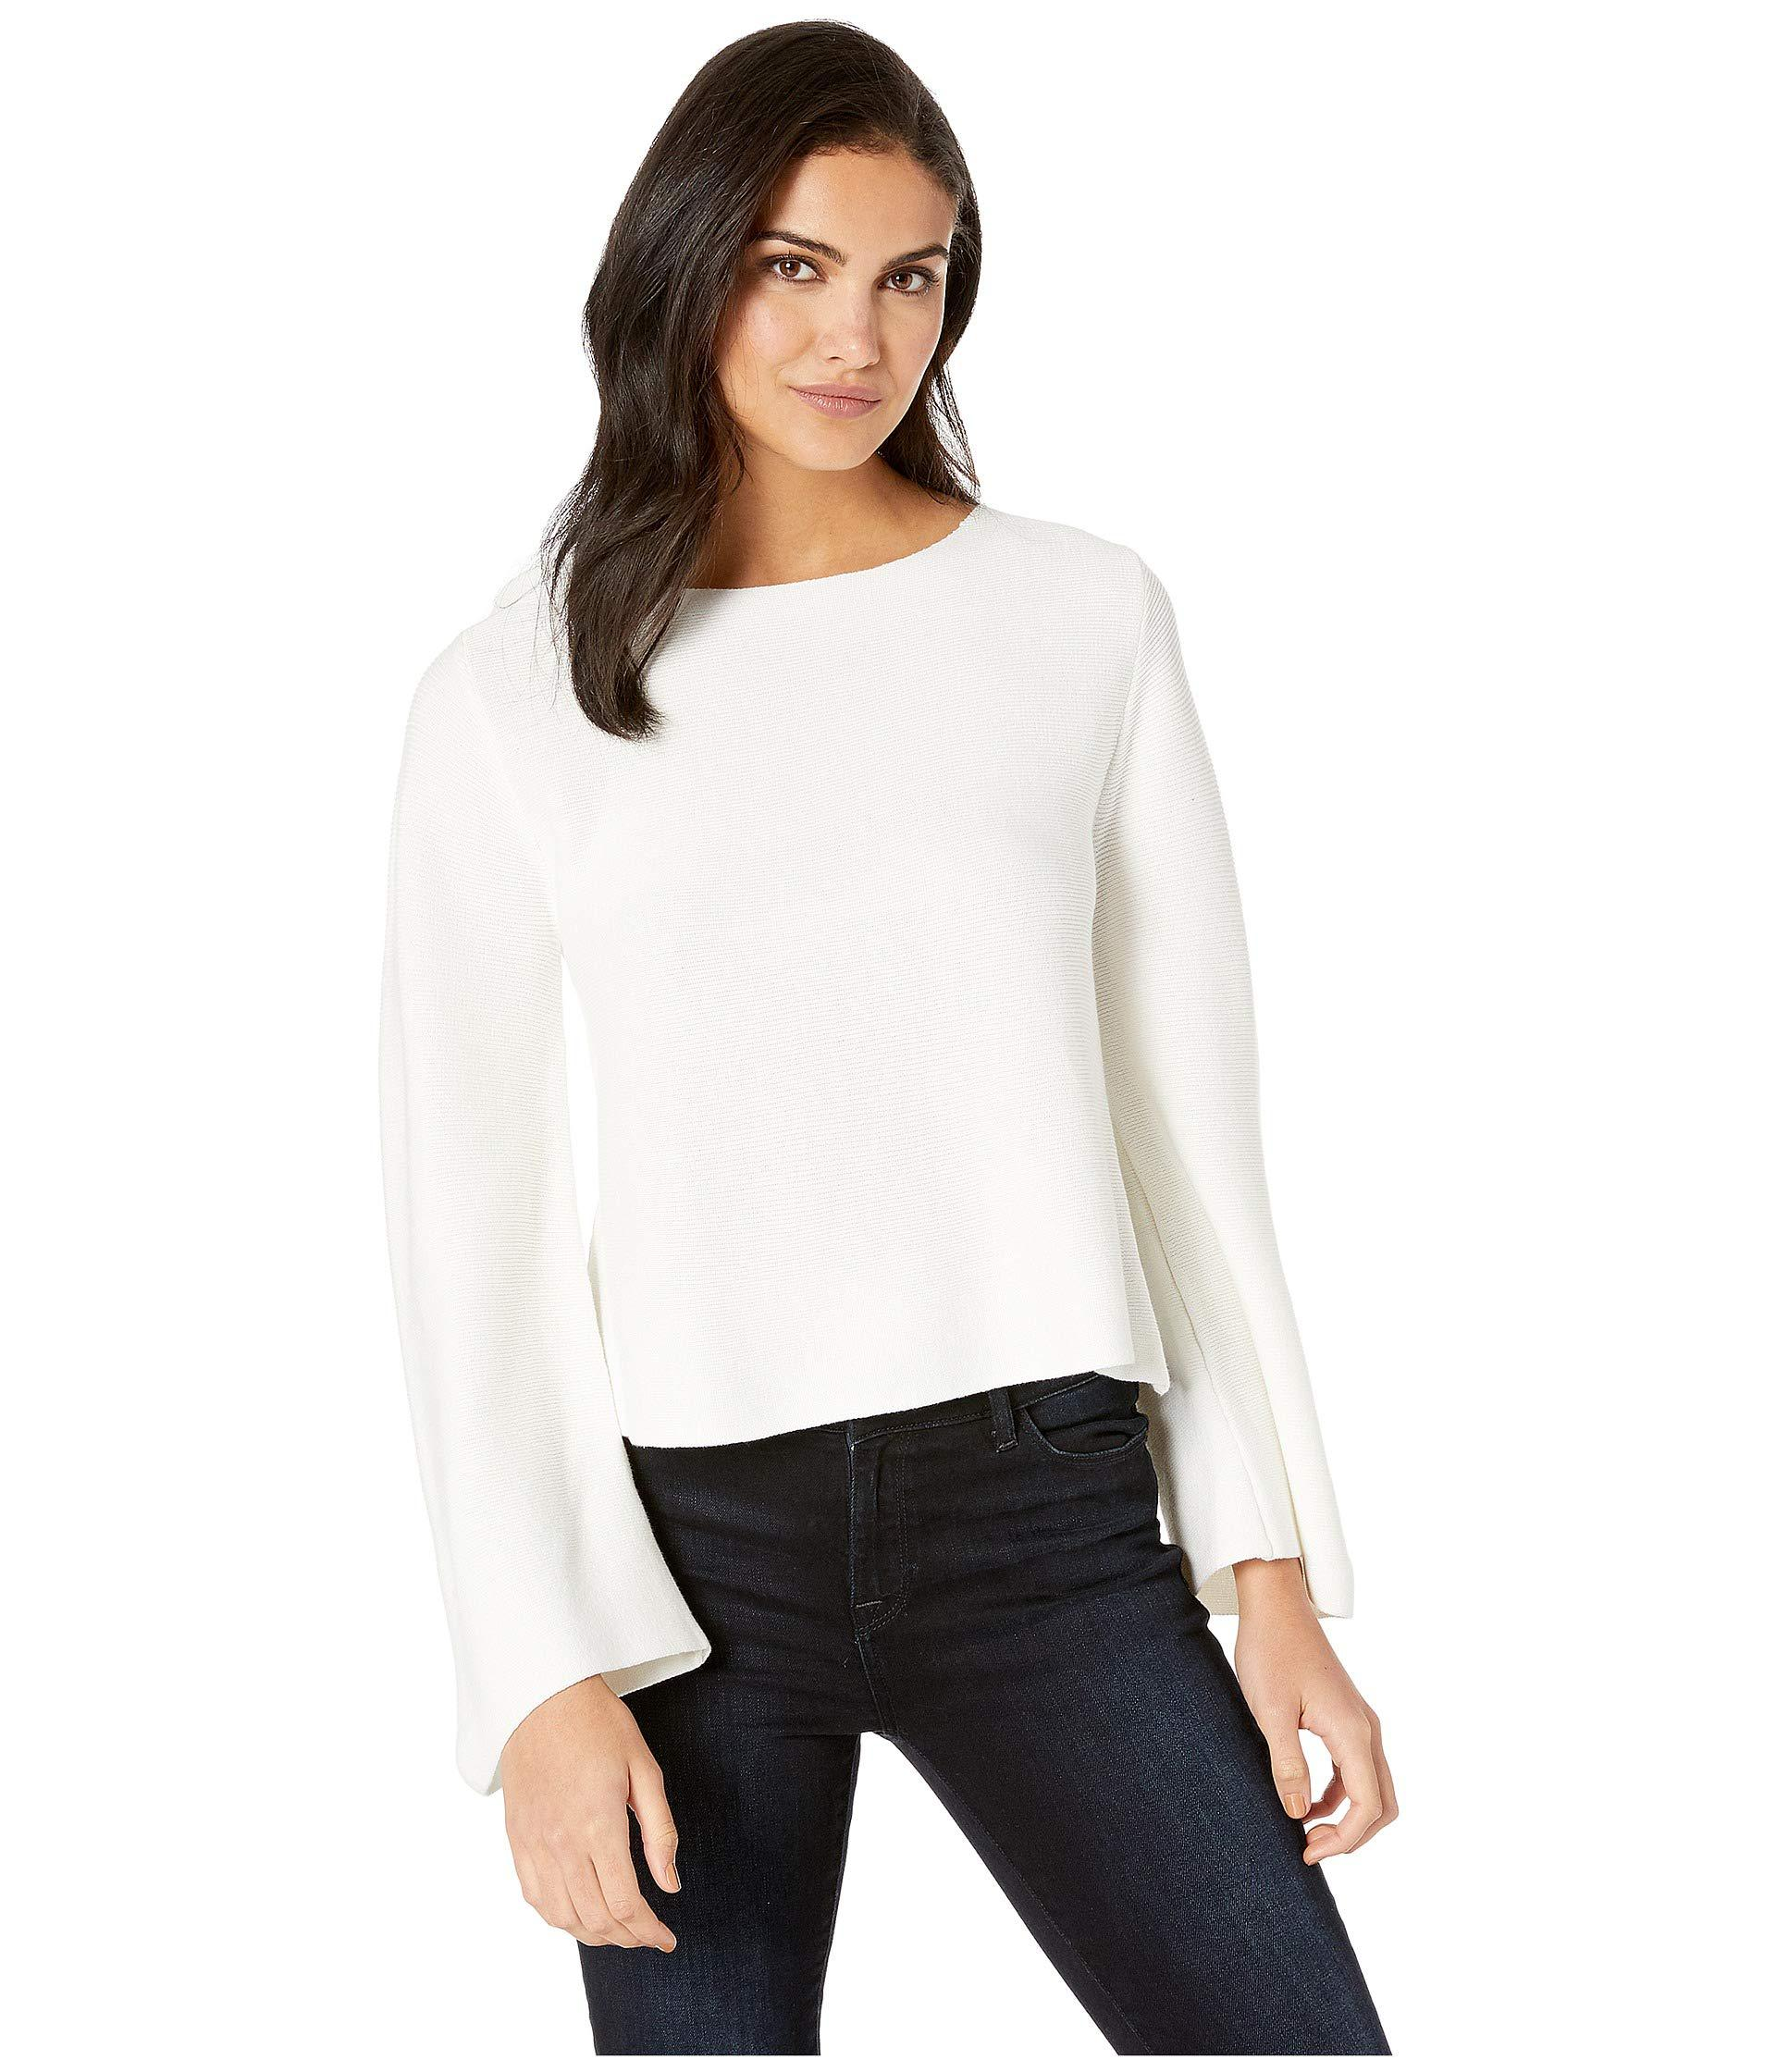 a1652f03c9e36 Lyst - Bishop + Young Savvy Sweater (ivory) Women s Sweater in White